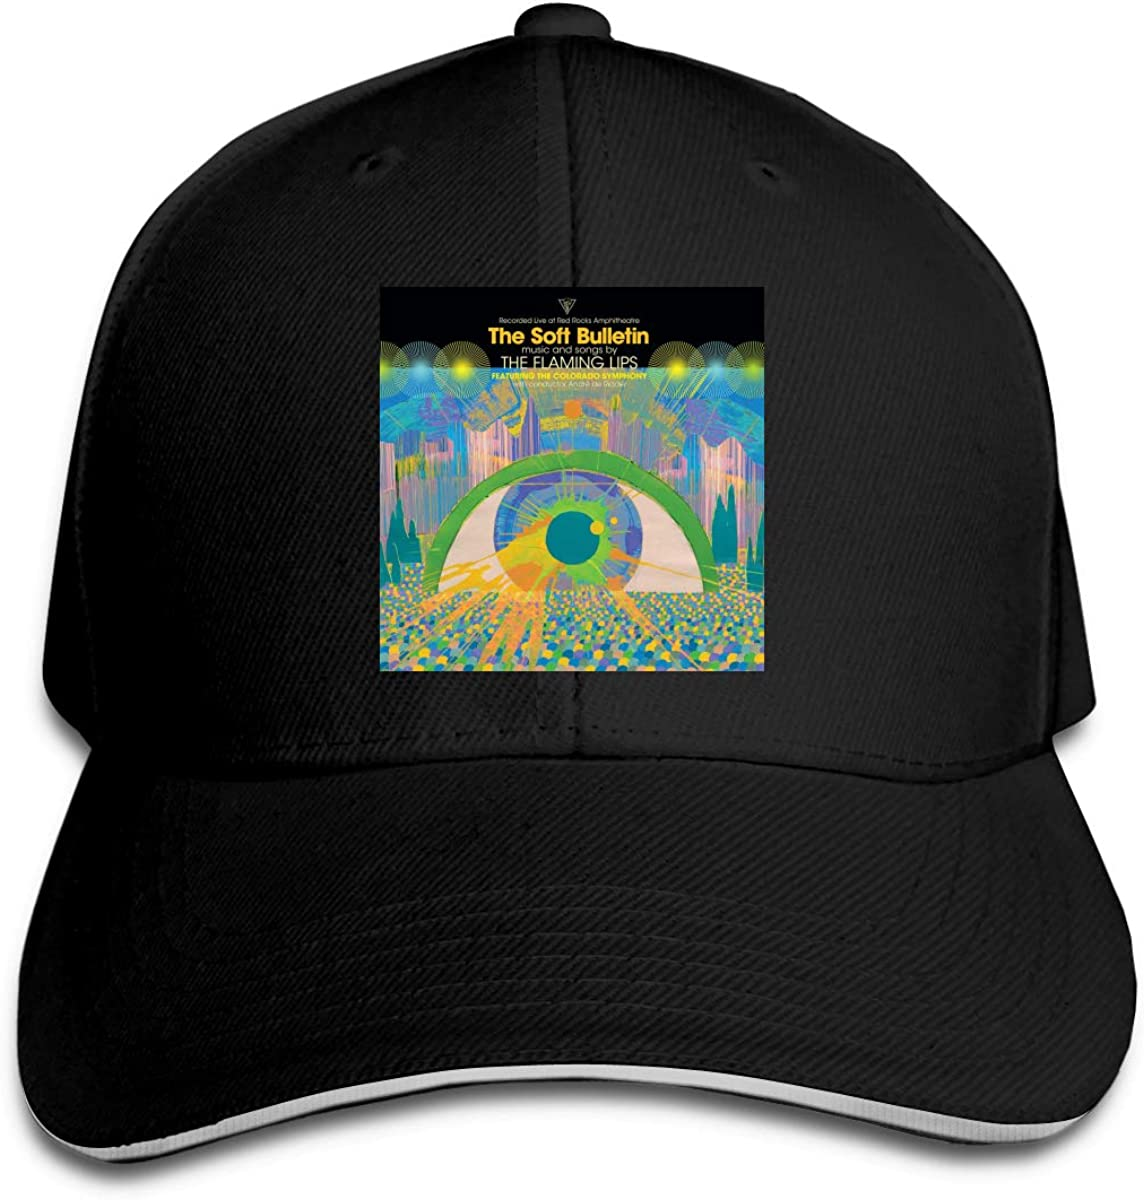 3D Printing Comfort for Men and Women The Flaming Lips Sandwich Cap Black